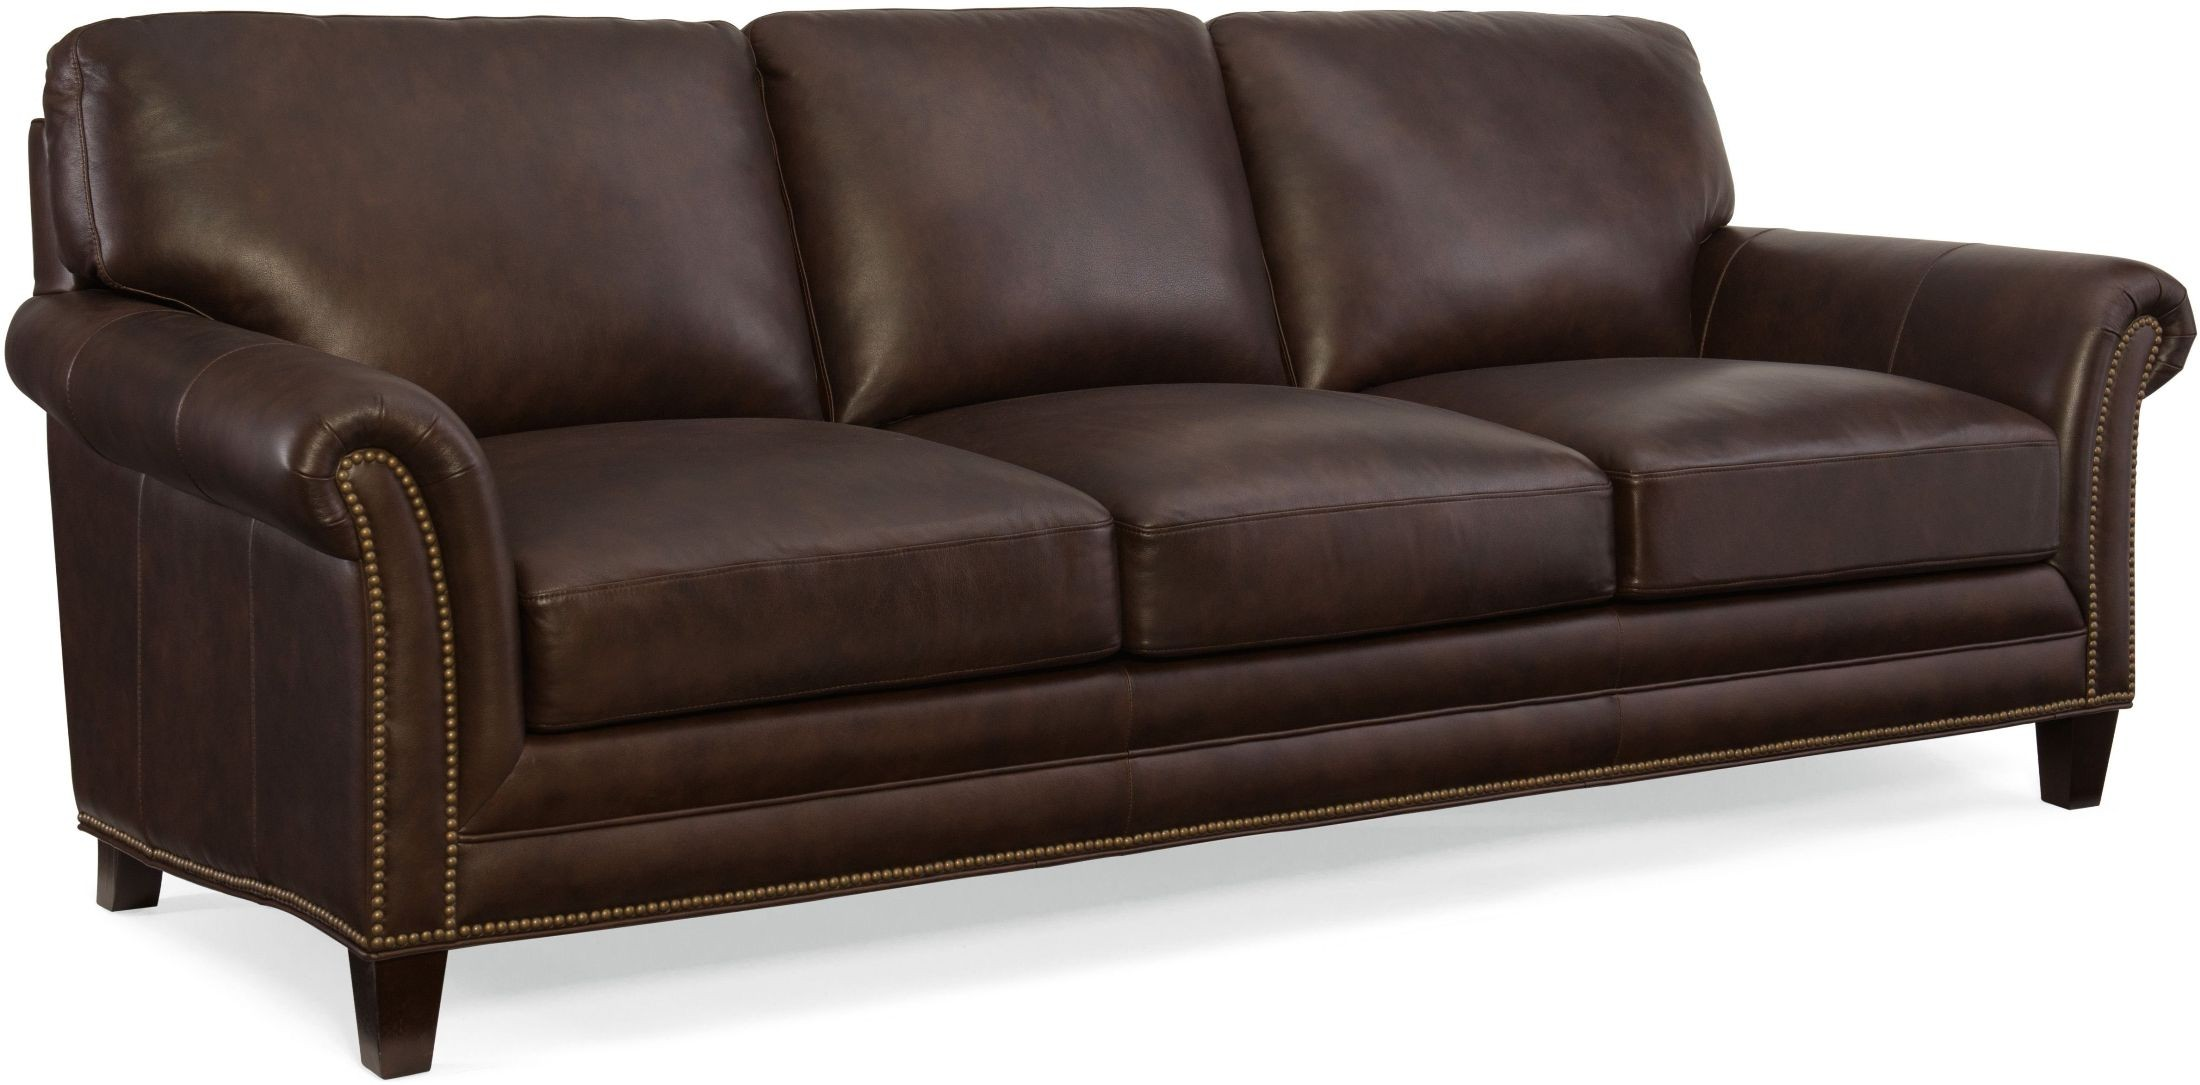 Marriott Brown Leather Sofa From Hooker | Coleman Furniture